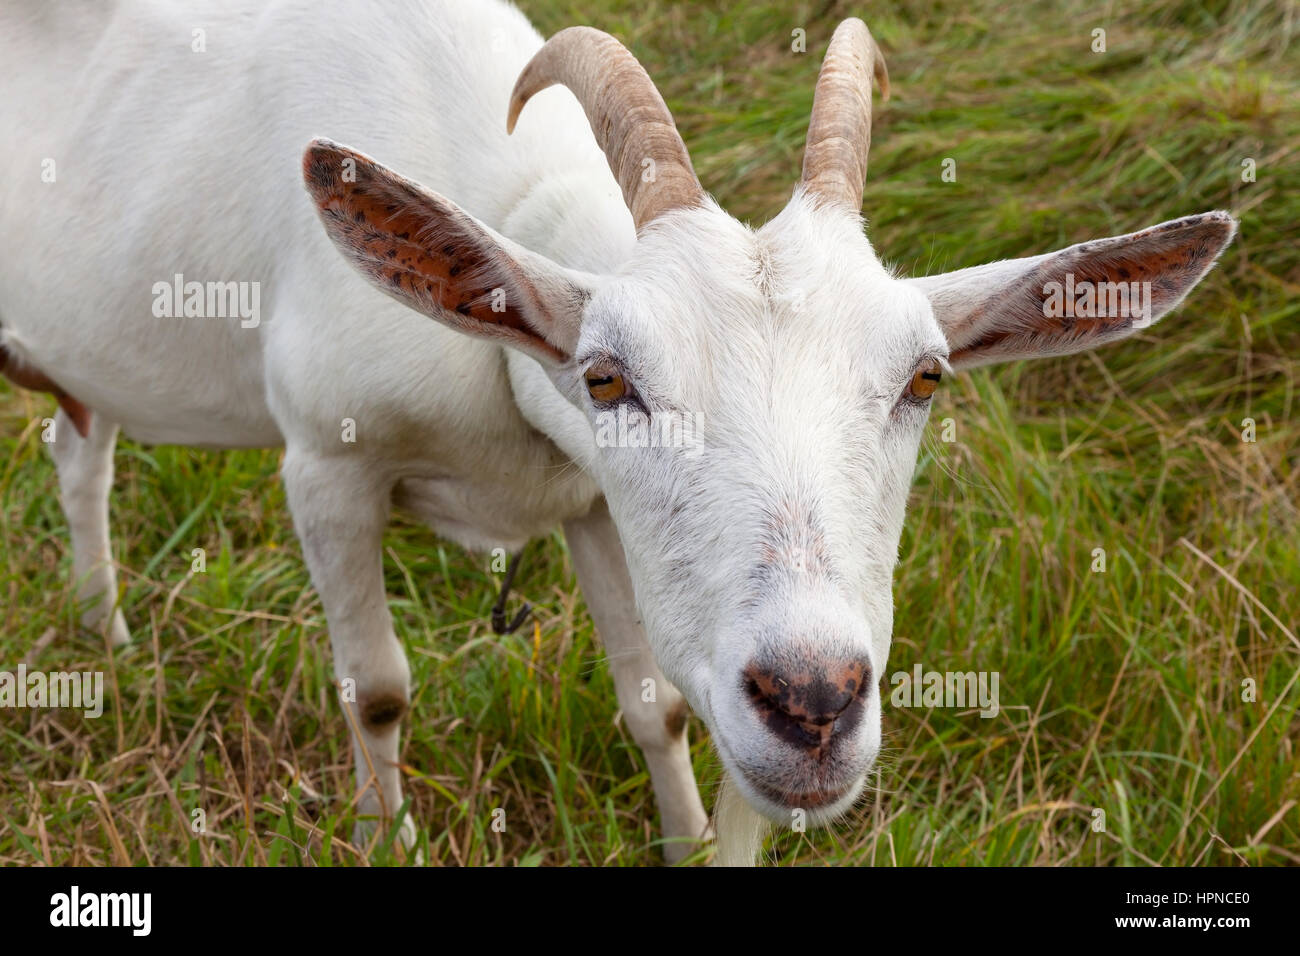 Saanen goats: photos, description and characteristics of the breed 15